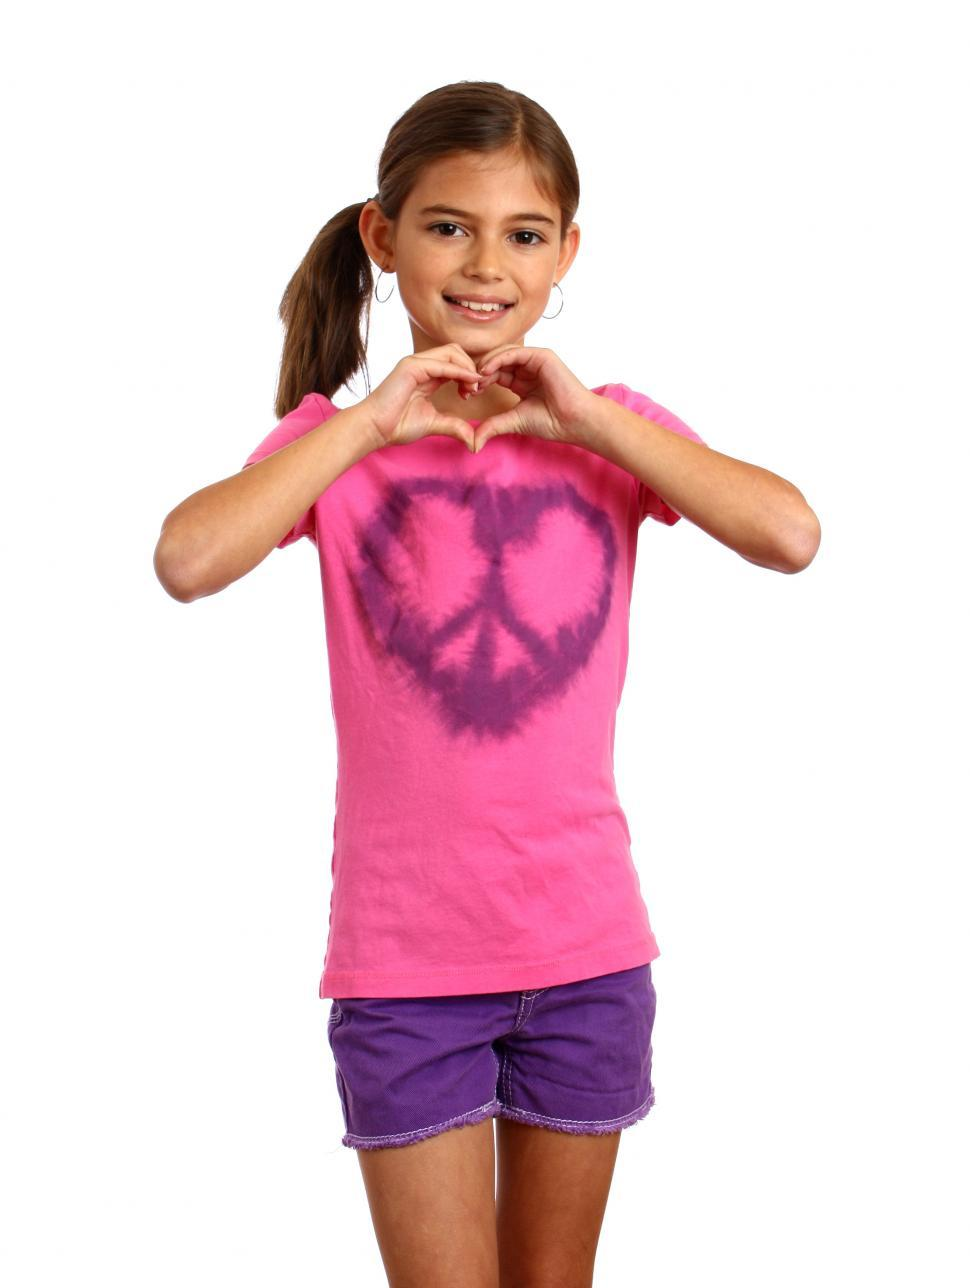 Download Free Stock HD Photo of A cute young girl making a heart symbol Online